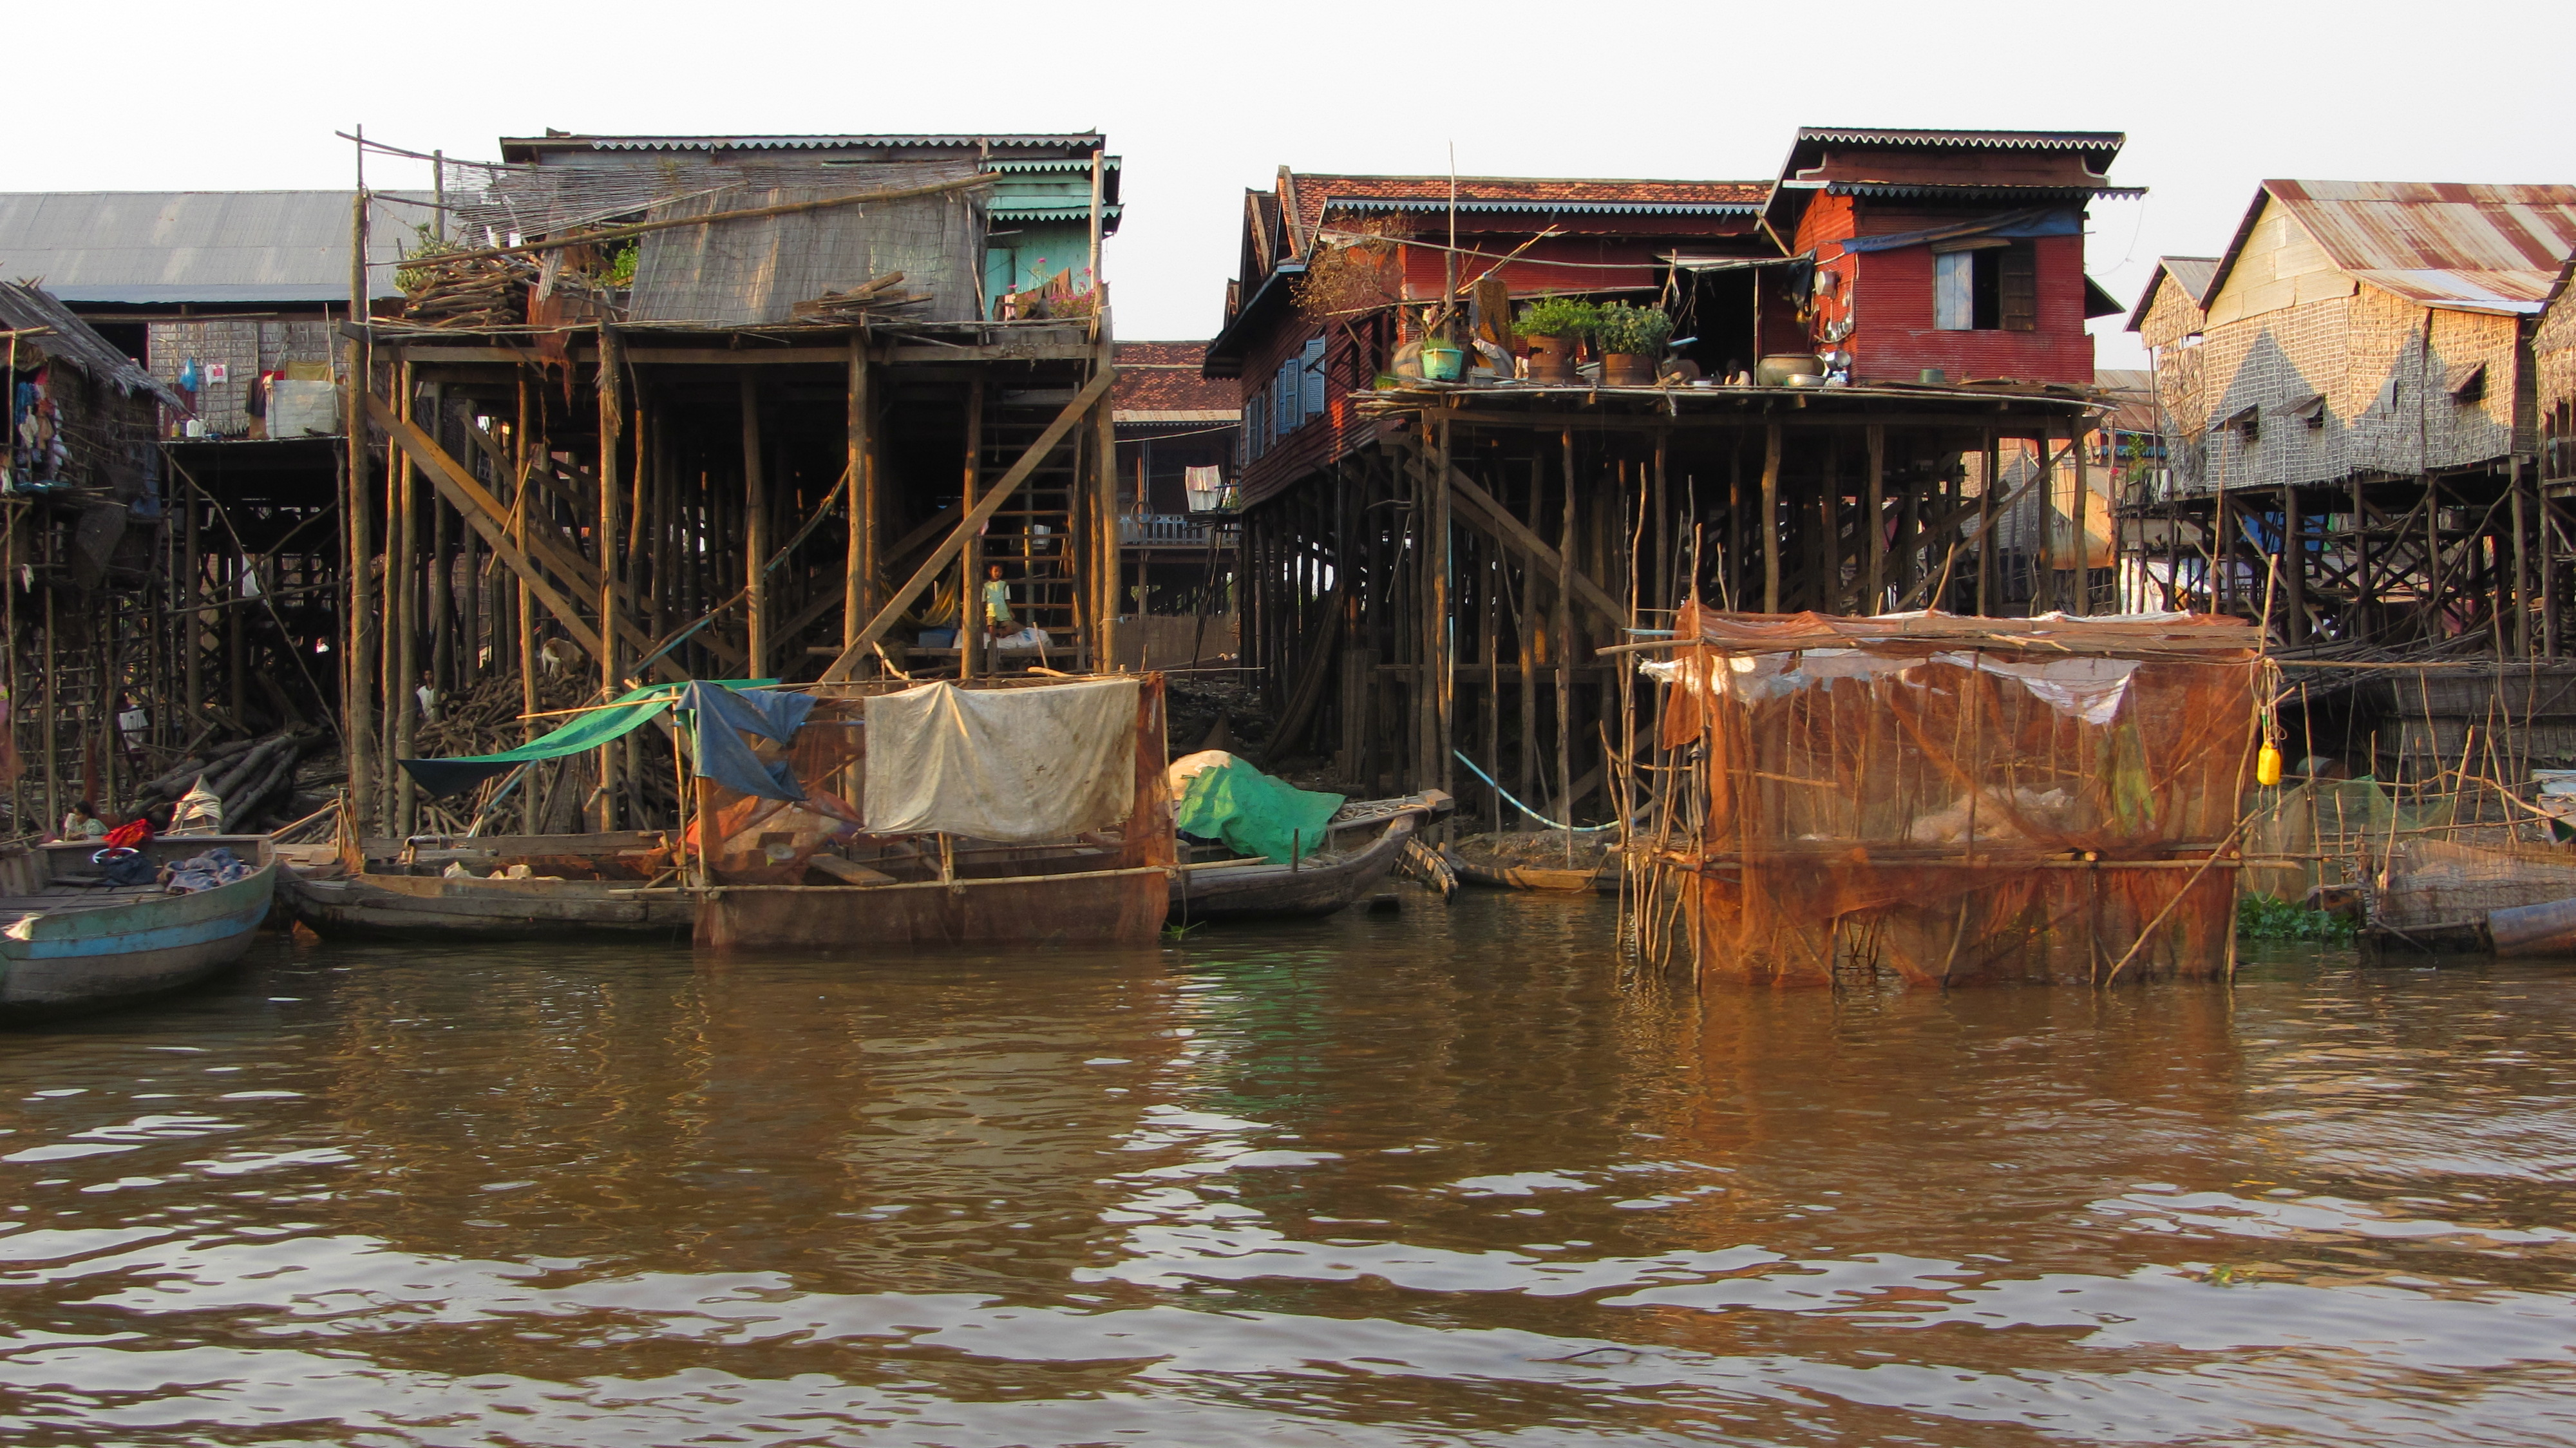 Houses on stilts on Tonle Sap